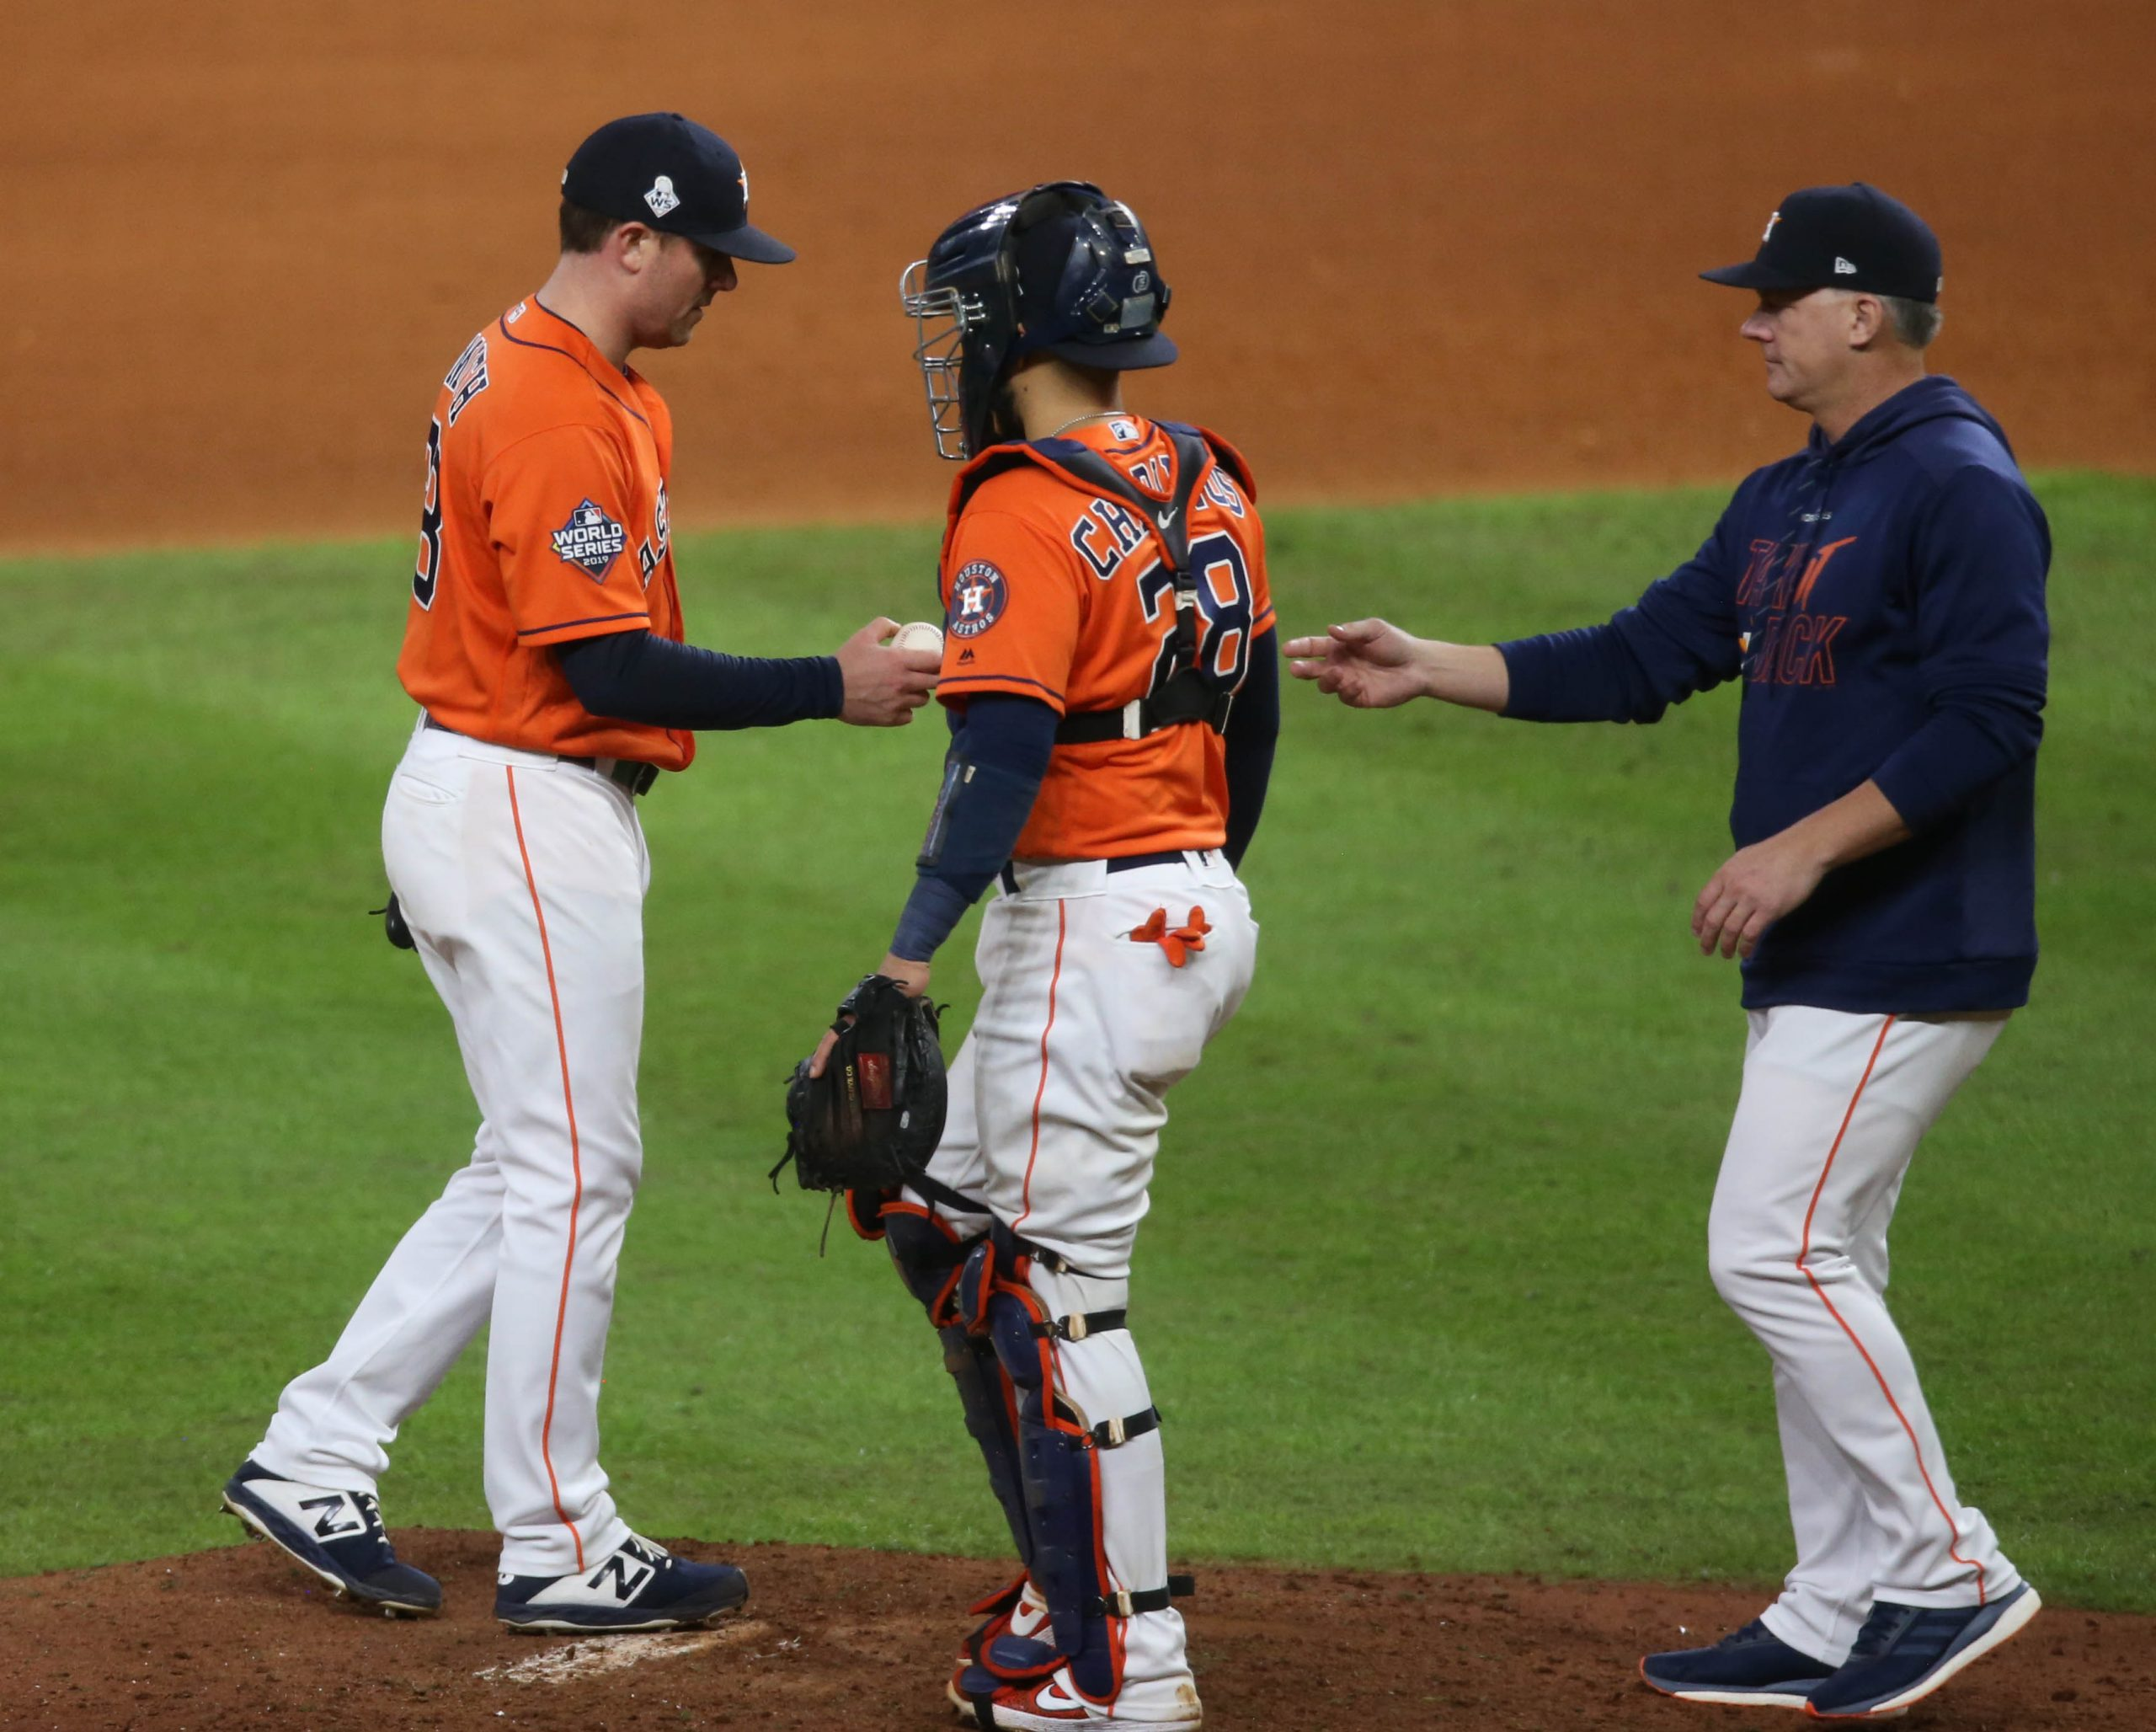 AJ Hinch explains questionable decision regarding Gerrit Cole pitching in Game 7